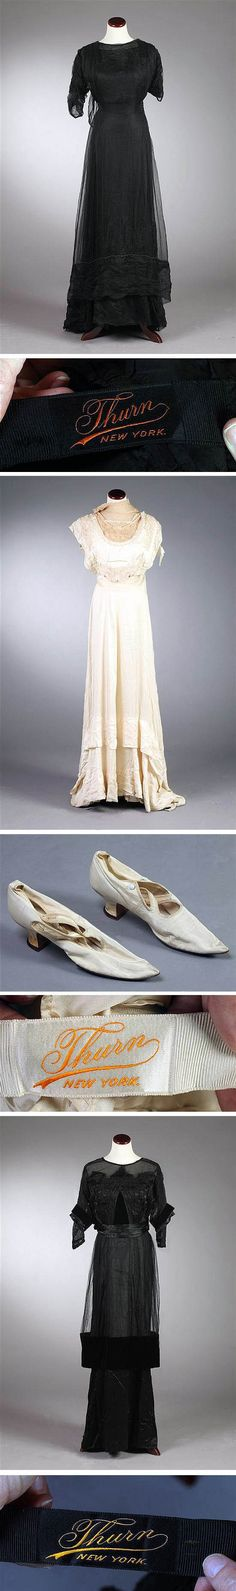 Dresses by Thurn, New York. Top: 1912. Middle: 1910. Bottom: 1914. Belonged to the Kenefick and Graves families, who lived in Buffalo, New York at the turn of the century. Sloans & Kenyon/Artfact